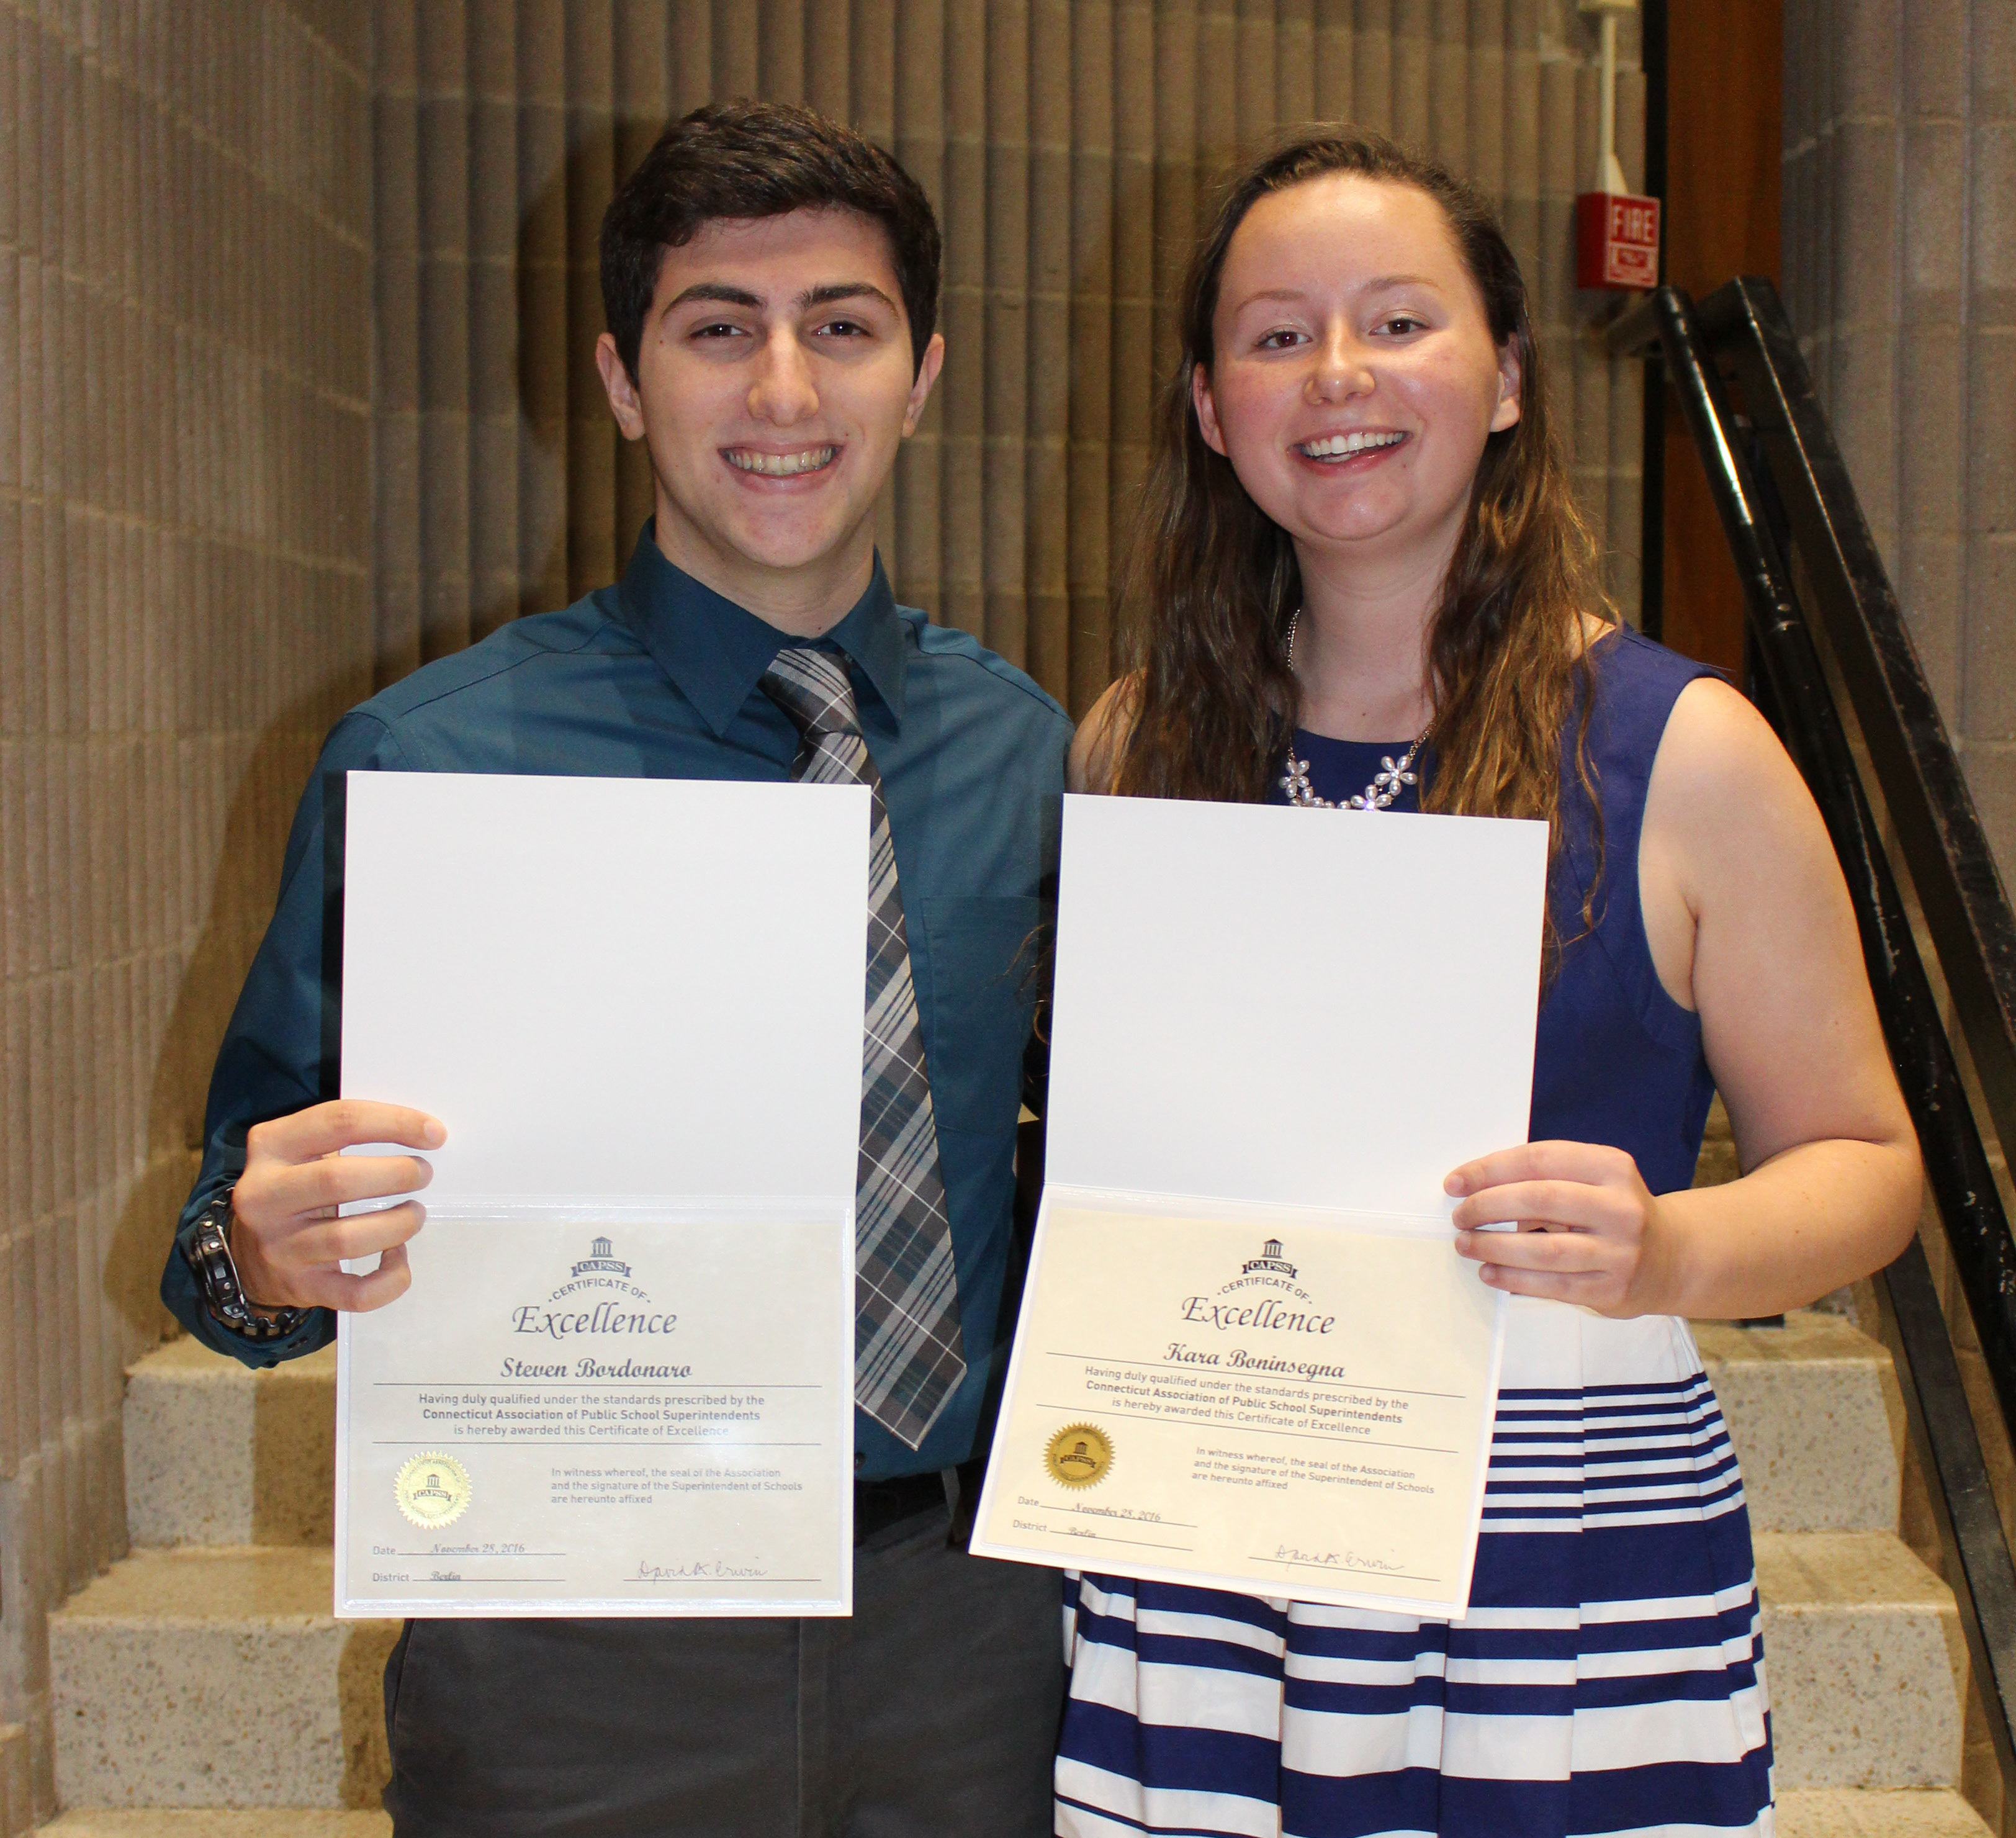 Steven Bordonaro and Kara Boninsegna were awarded the CAPSS (CT Association of Public School Superintendents) Certificate of Excellence leadership award at the November Board of Education meeting. The award is based on a student's leadership to the school, academic prowess relative to ability and service to others in the community.